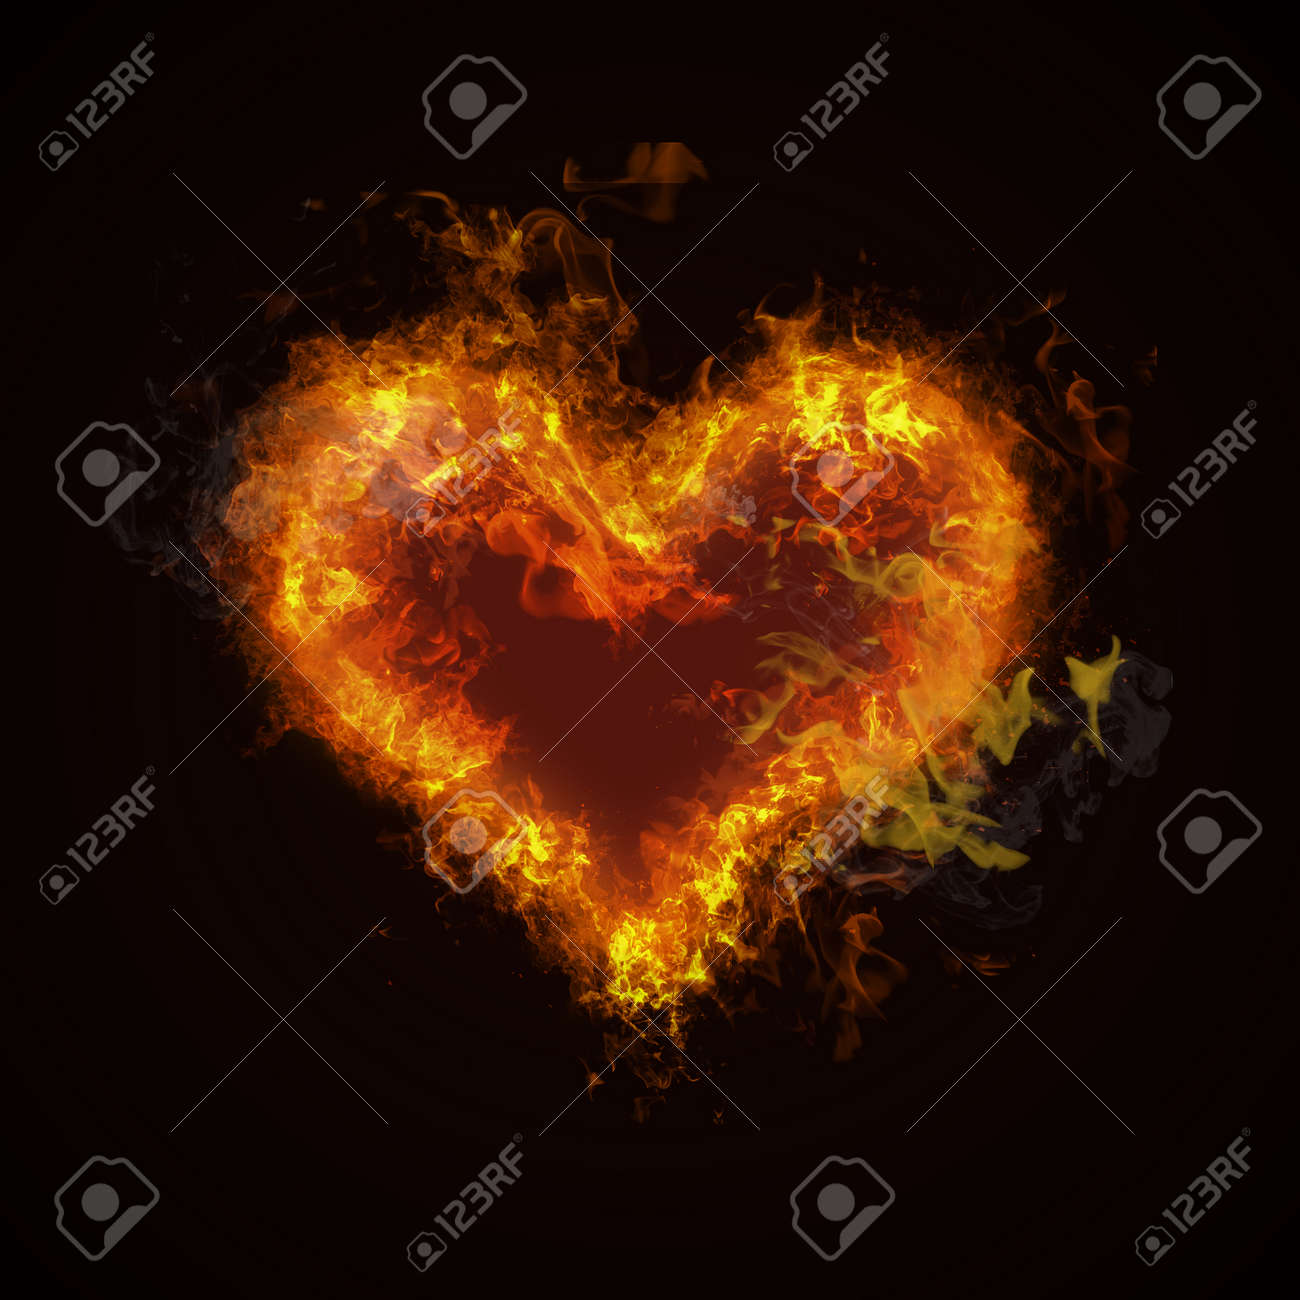 Hot fire heart burning on black background. Passion and desire - 42897984